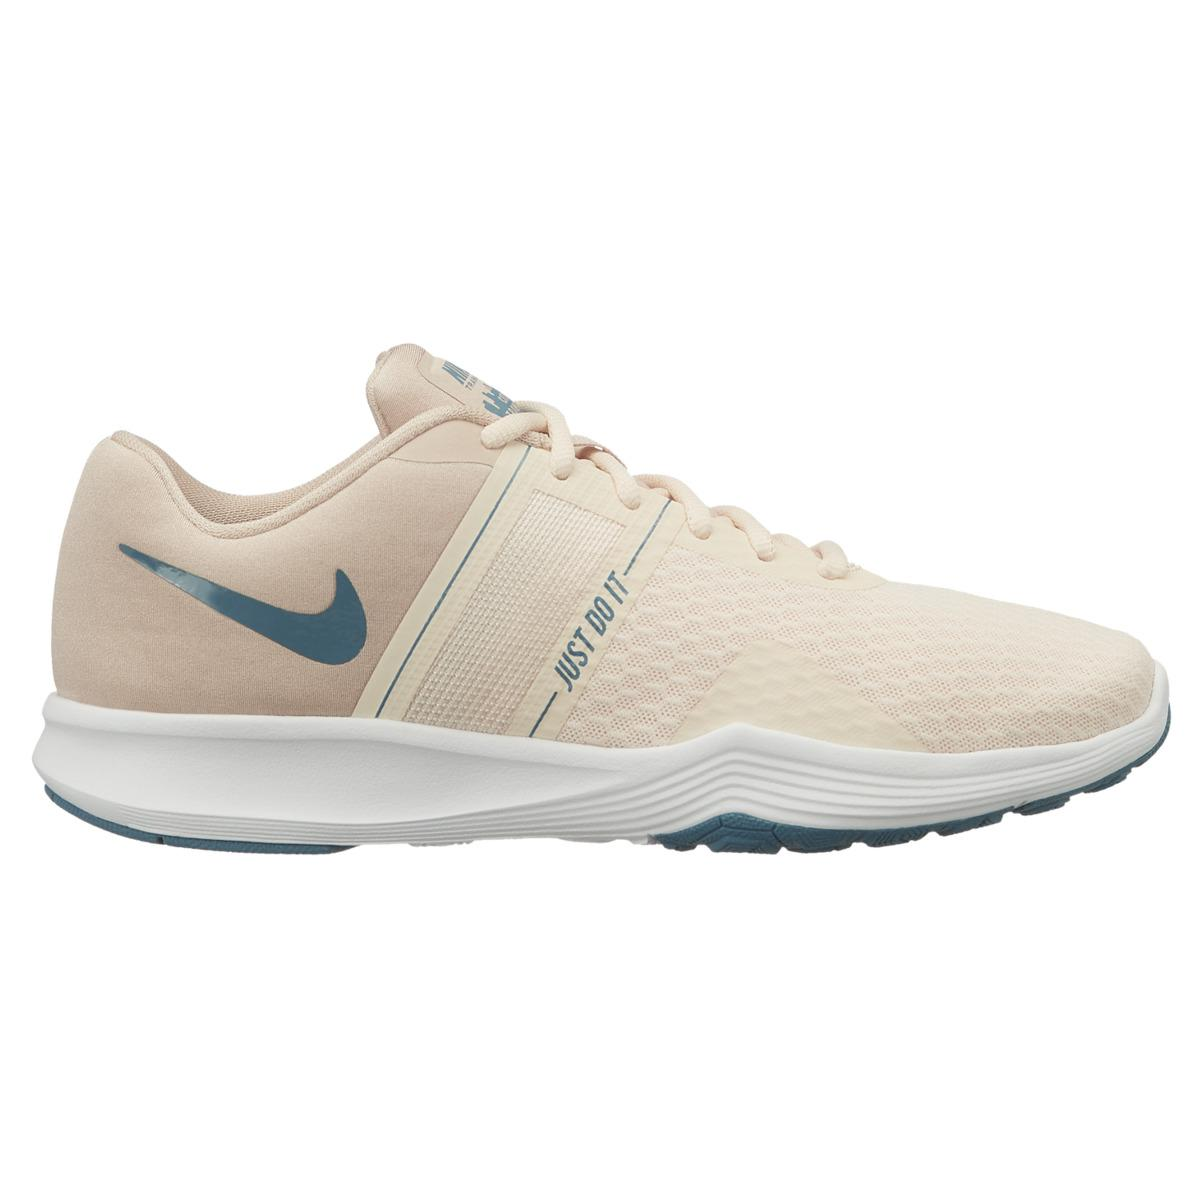 88d9639fda5b Nike. Women s Natural City Trainer 2 Fitness cross Training Shoes. £52 From El  Corte Ingles